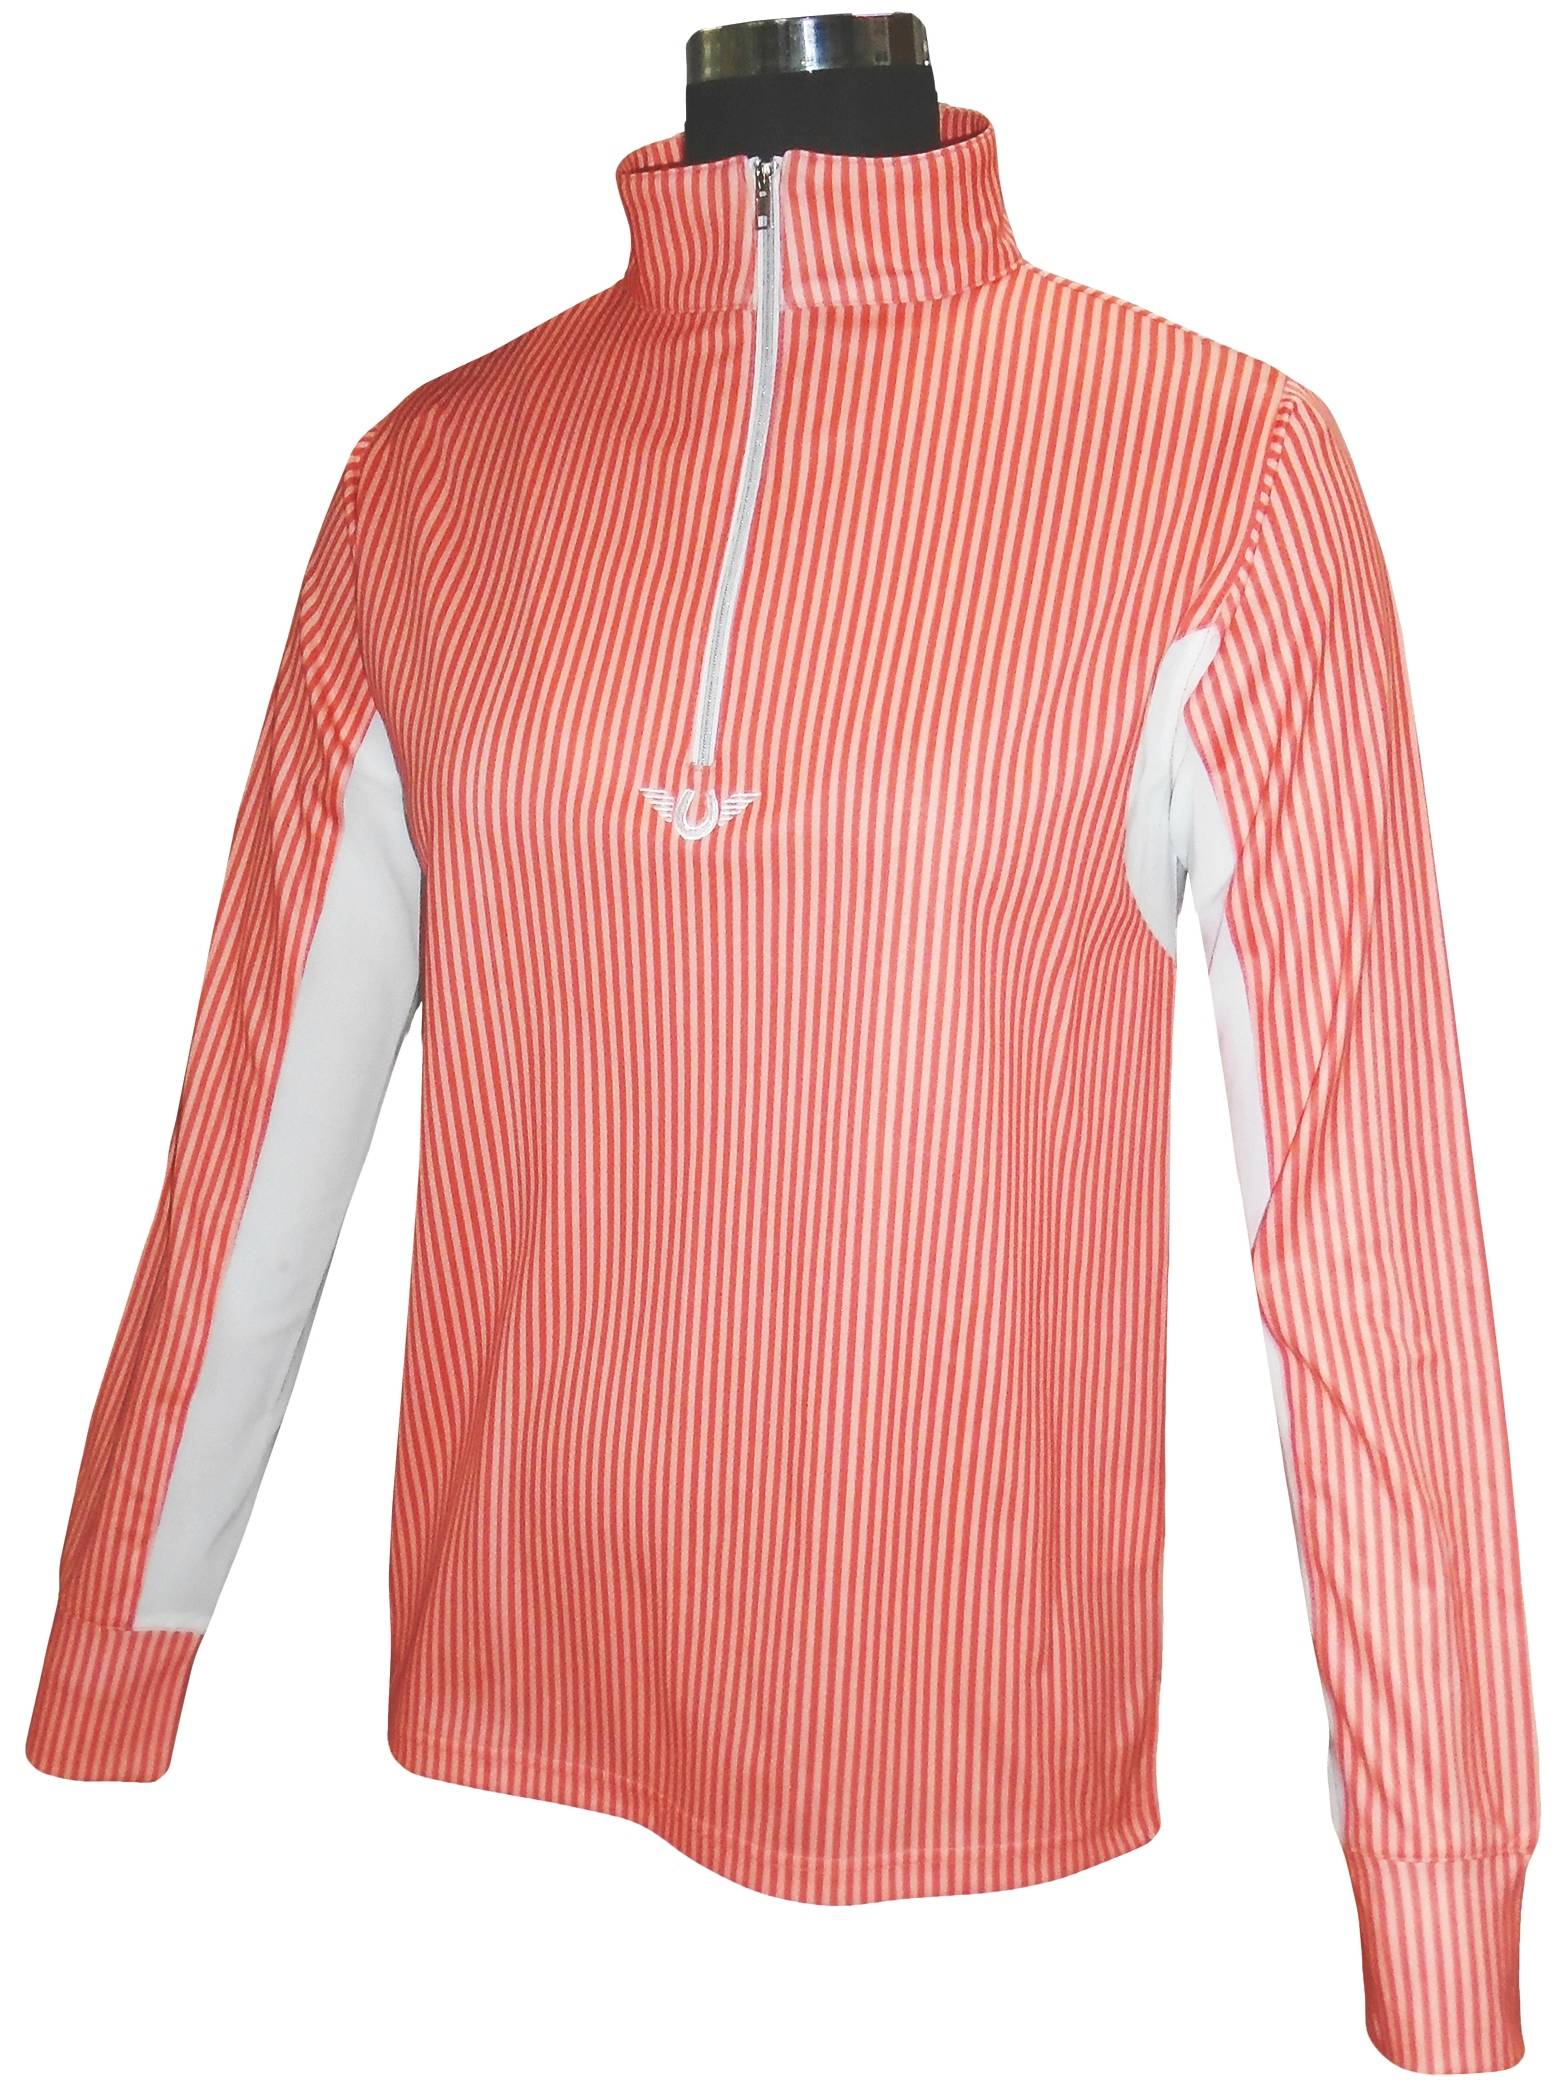 TuffRider Ladies Neon Stripe Long Sleeve Technical Shirt